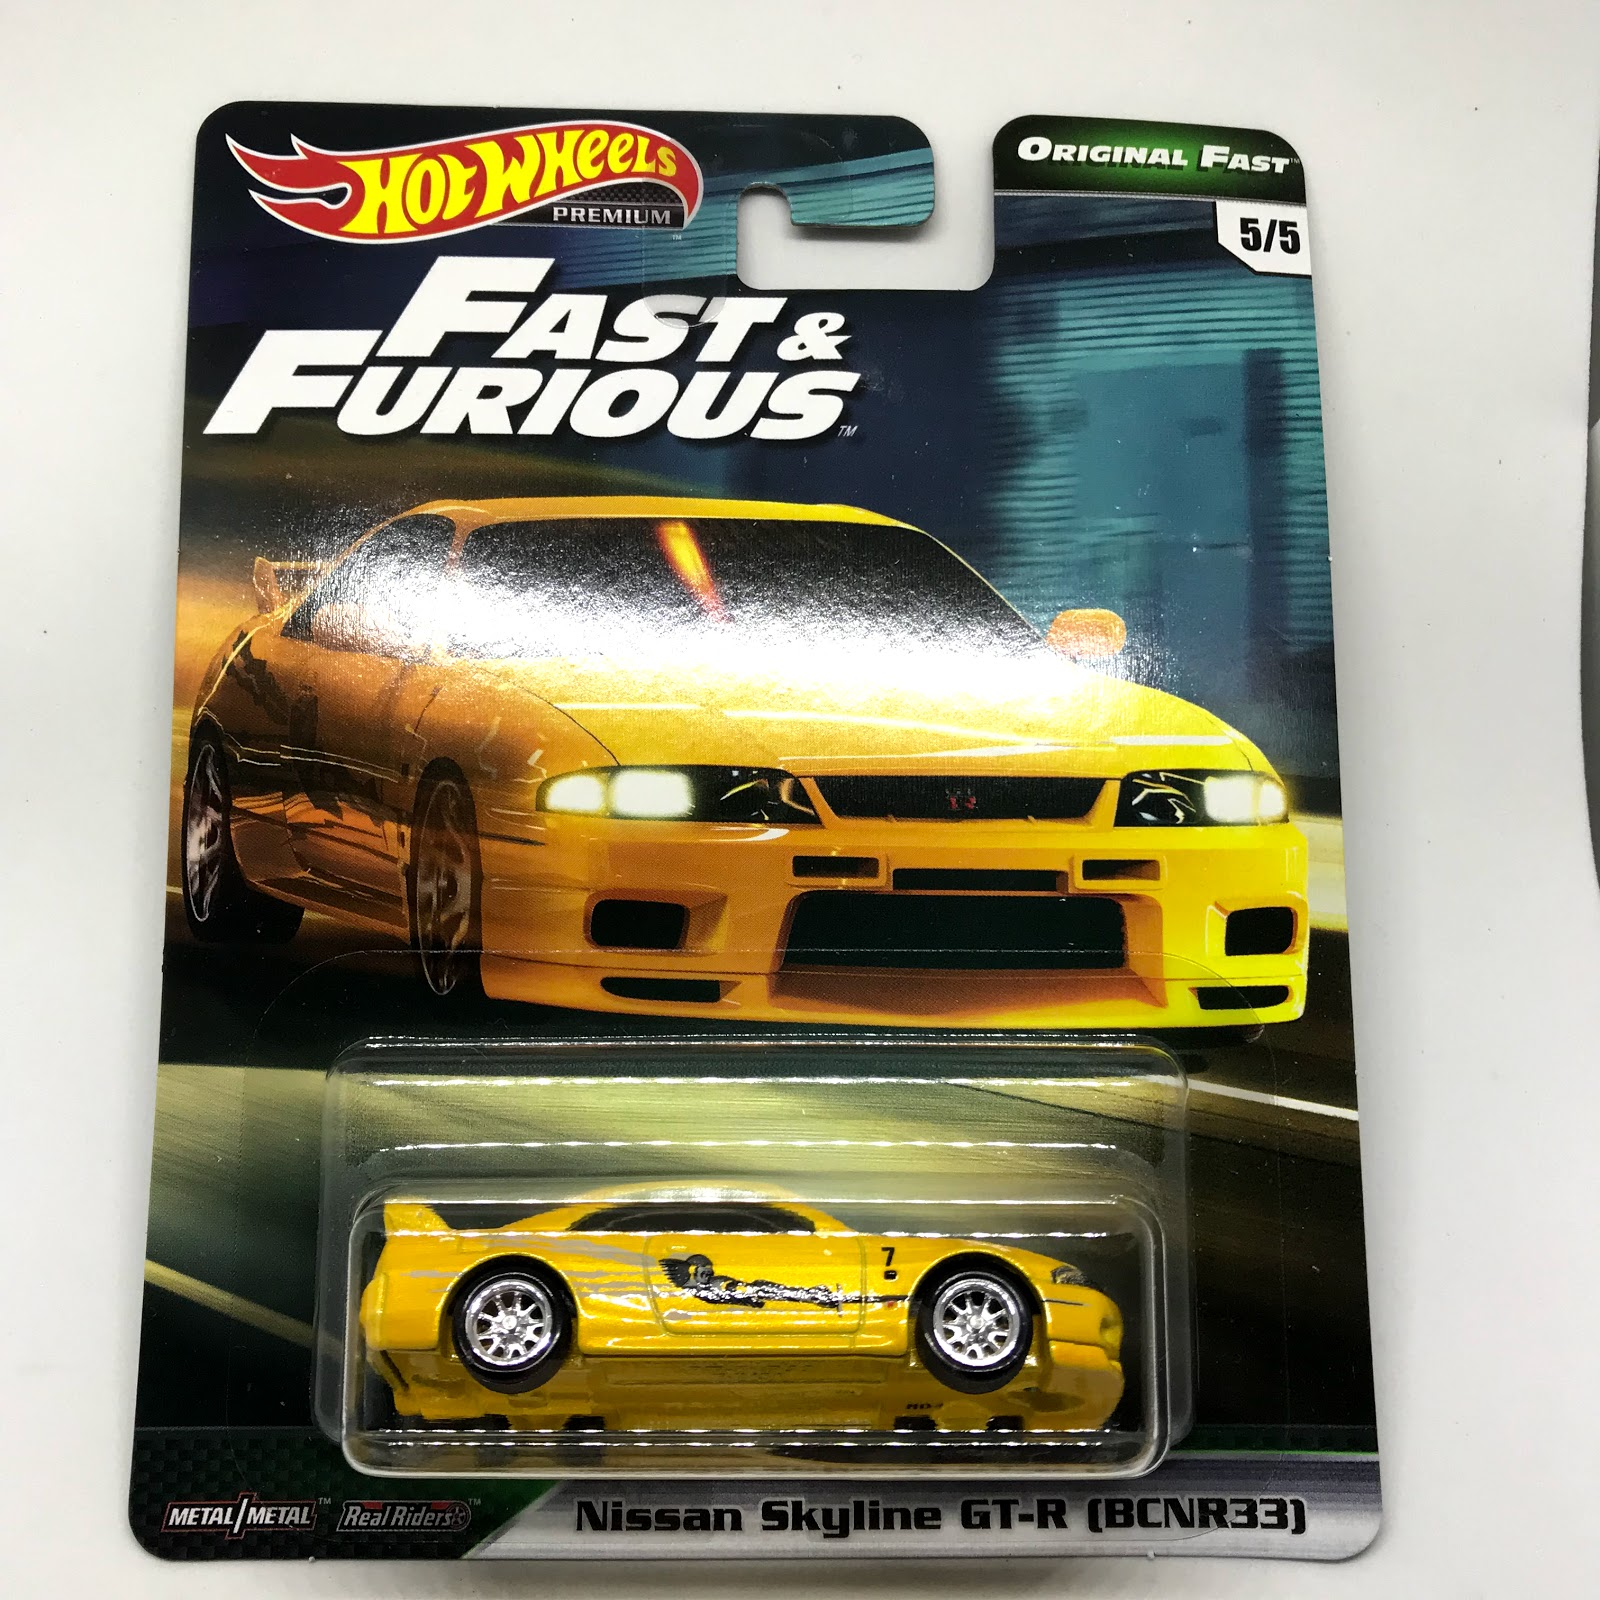 BCNR33 Hot Wheels Fast /& Furious Nissan Skyline GT-R with Real Riders